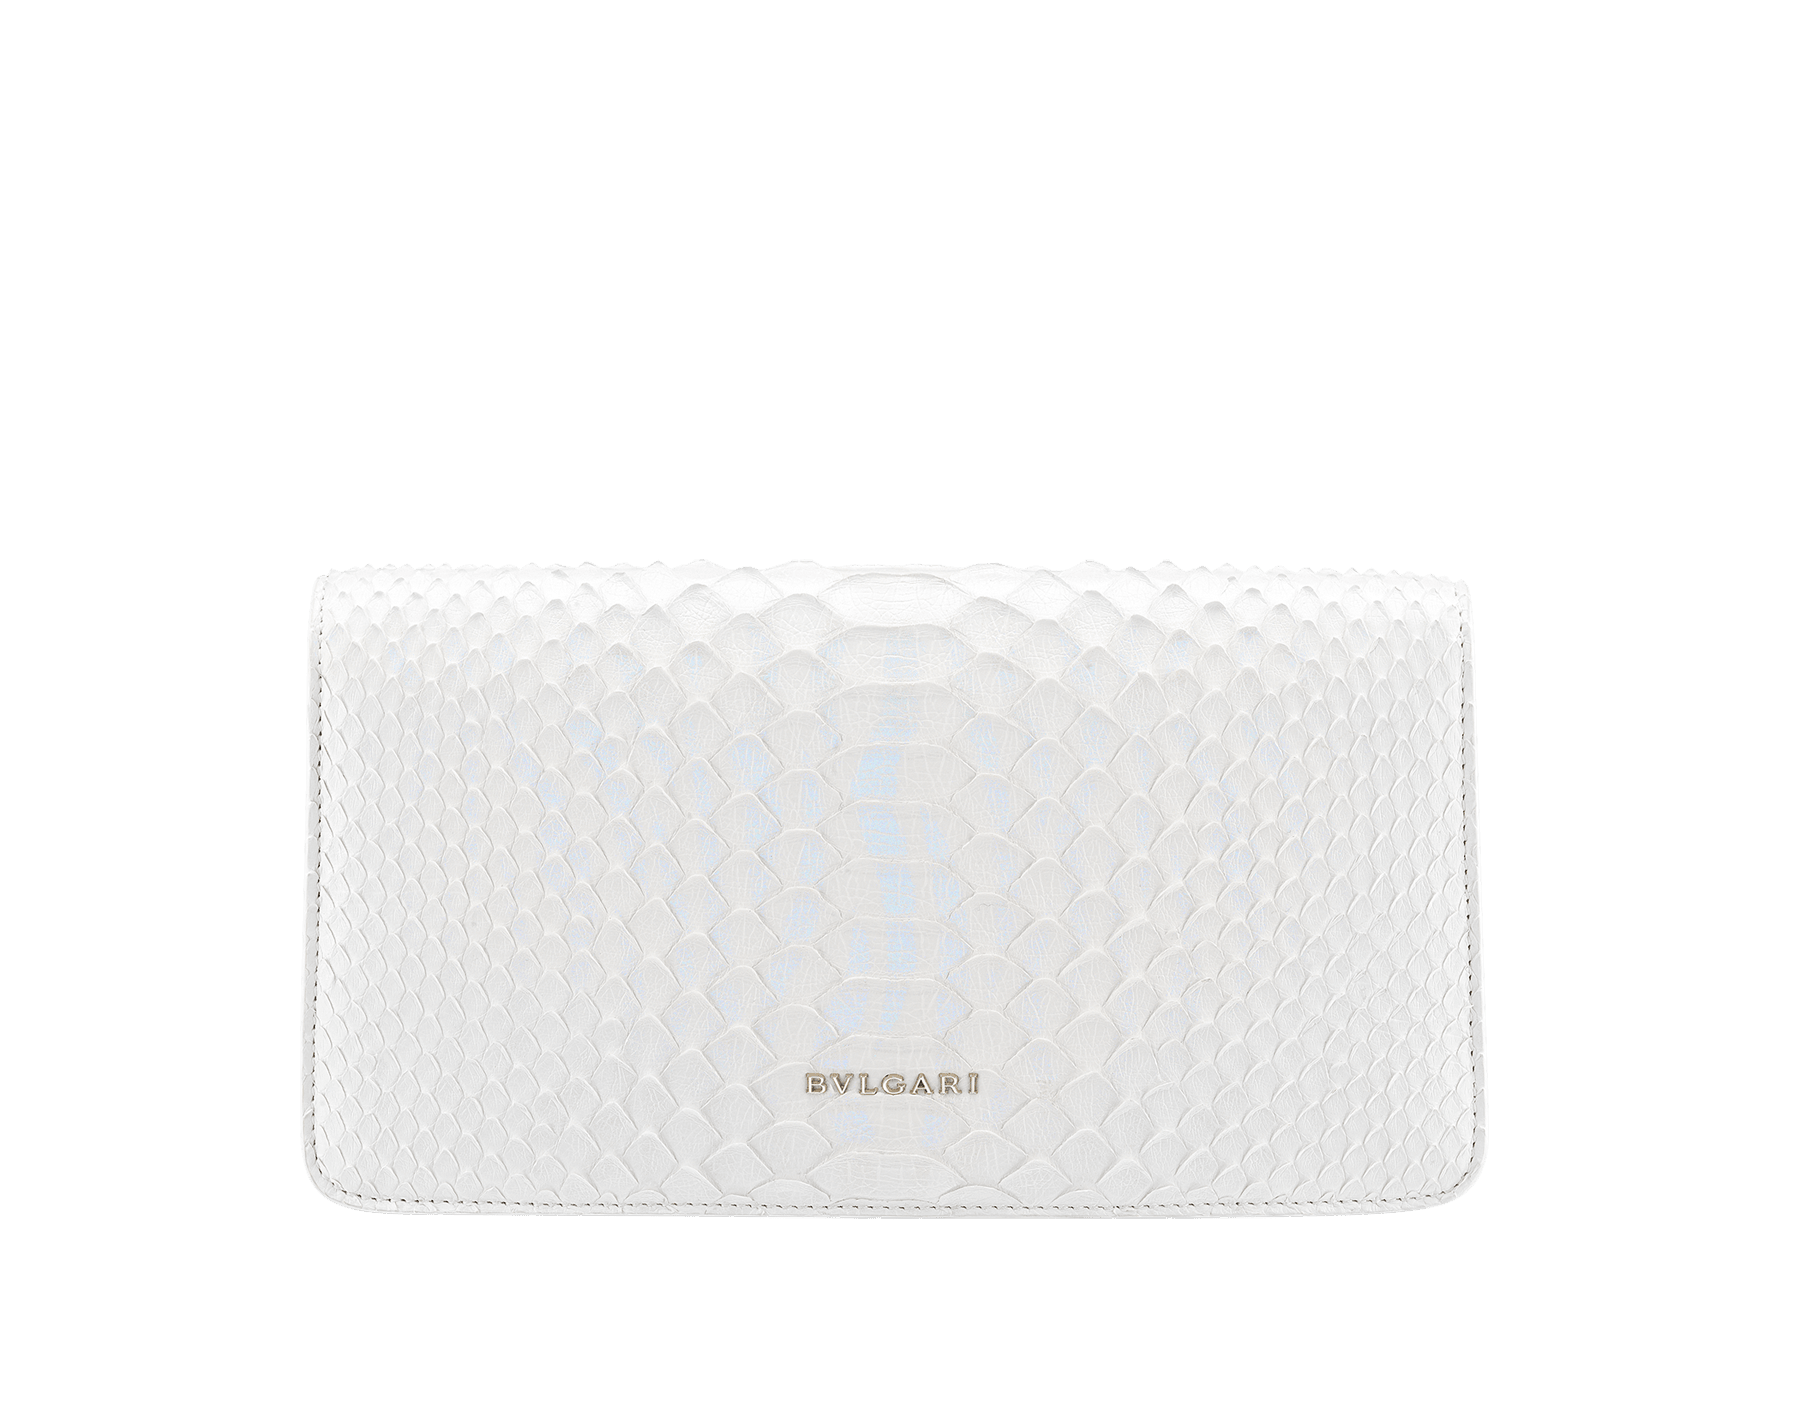 """""""Serpenti Forever"""" shoulder bag in white agate python skin with an iridescent finishing. Iconic snake head closure in light gold plated brass enriched with matte black and shiny white agate enamel and black onyx eyes. 289774 image 3"""